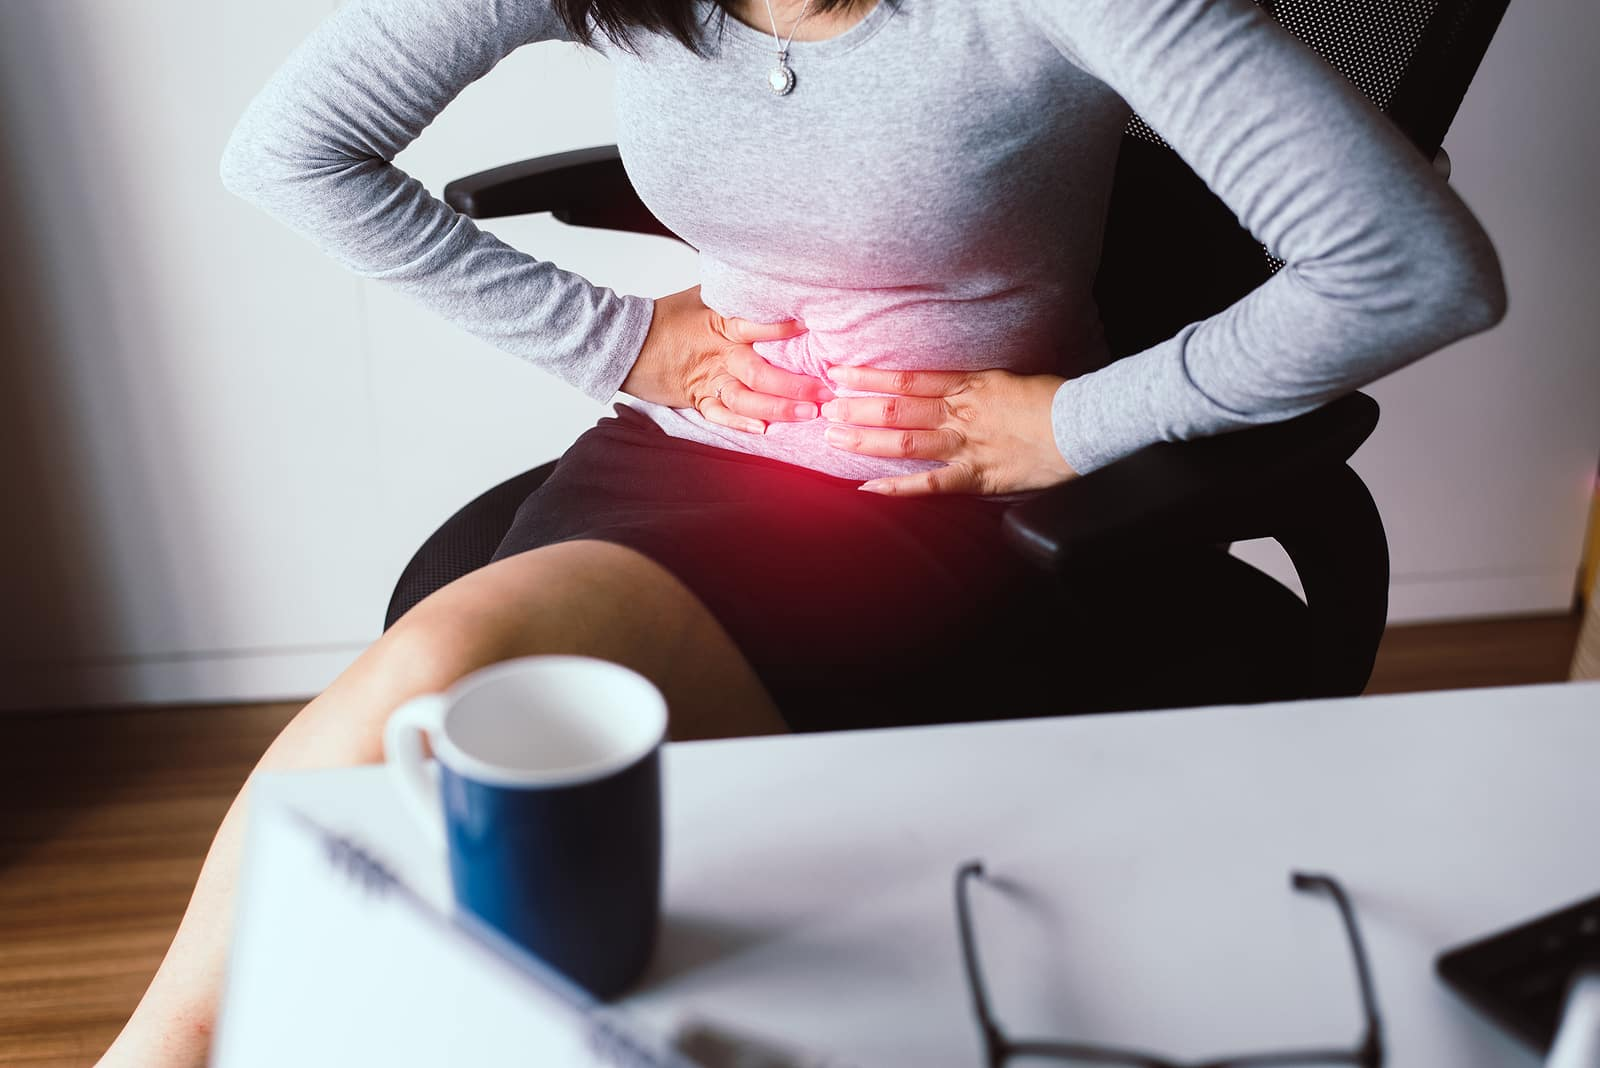 Digestive issues after COVID: an RD answers